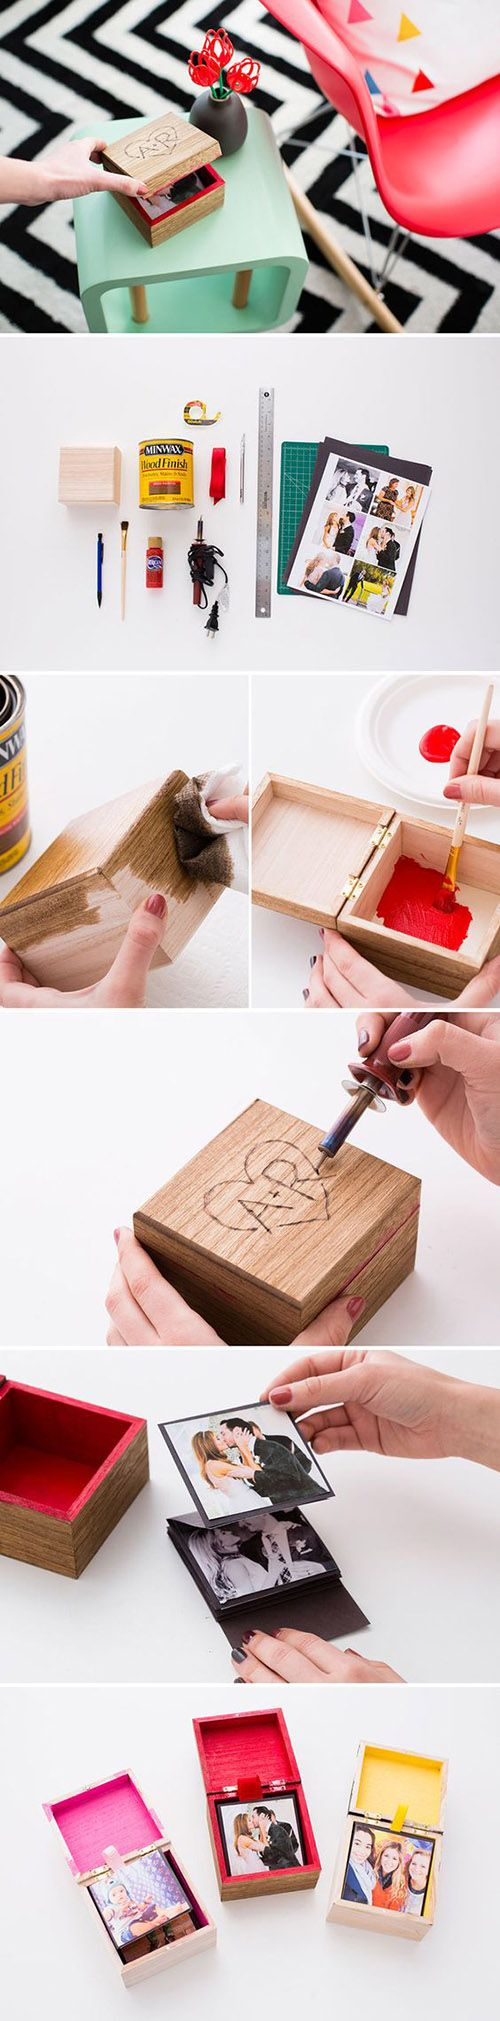 popup photo box adced diy and crafts pinterest photo